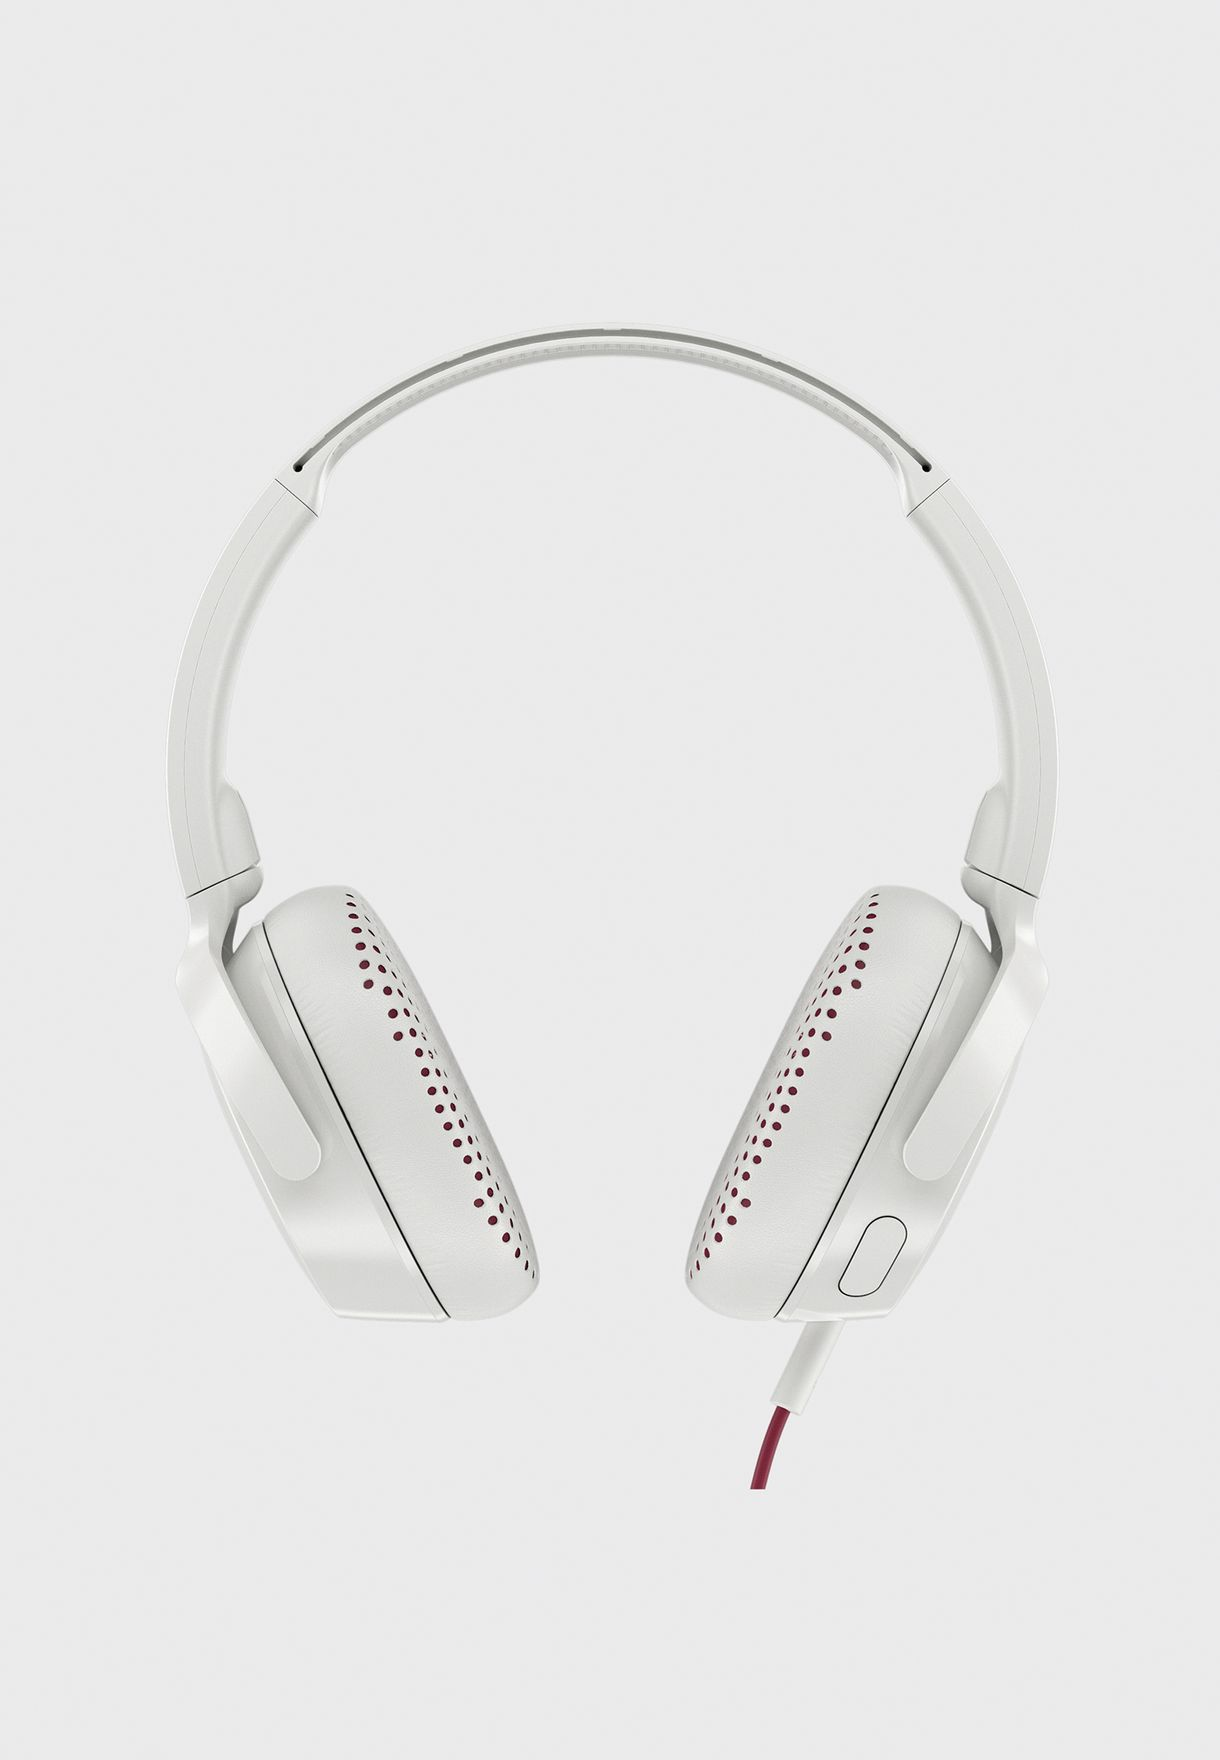 Riff On-Ear Headphone With Mic